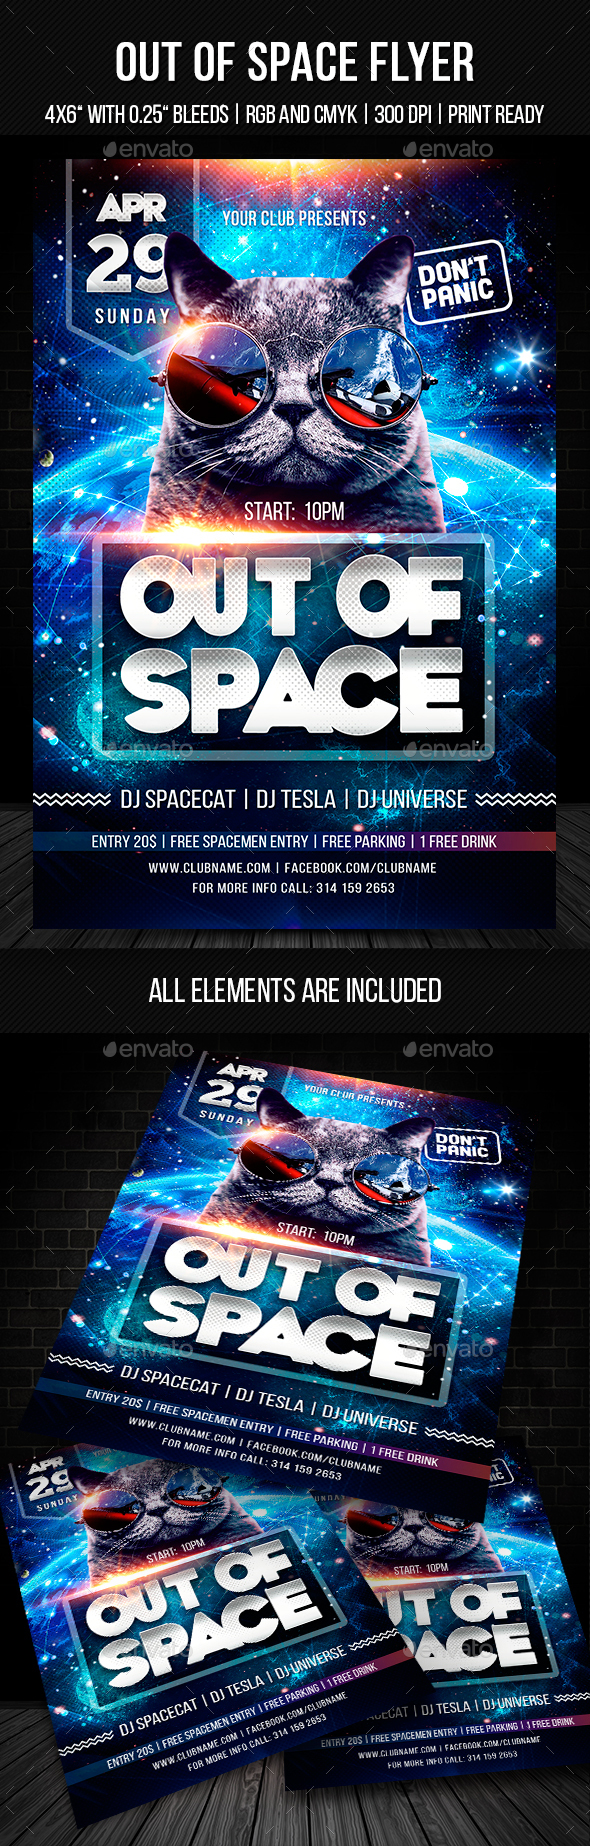 Out of Space Flyer Template - Clubs & Parties Events